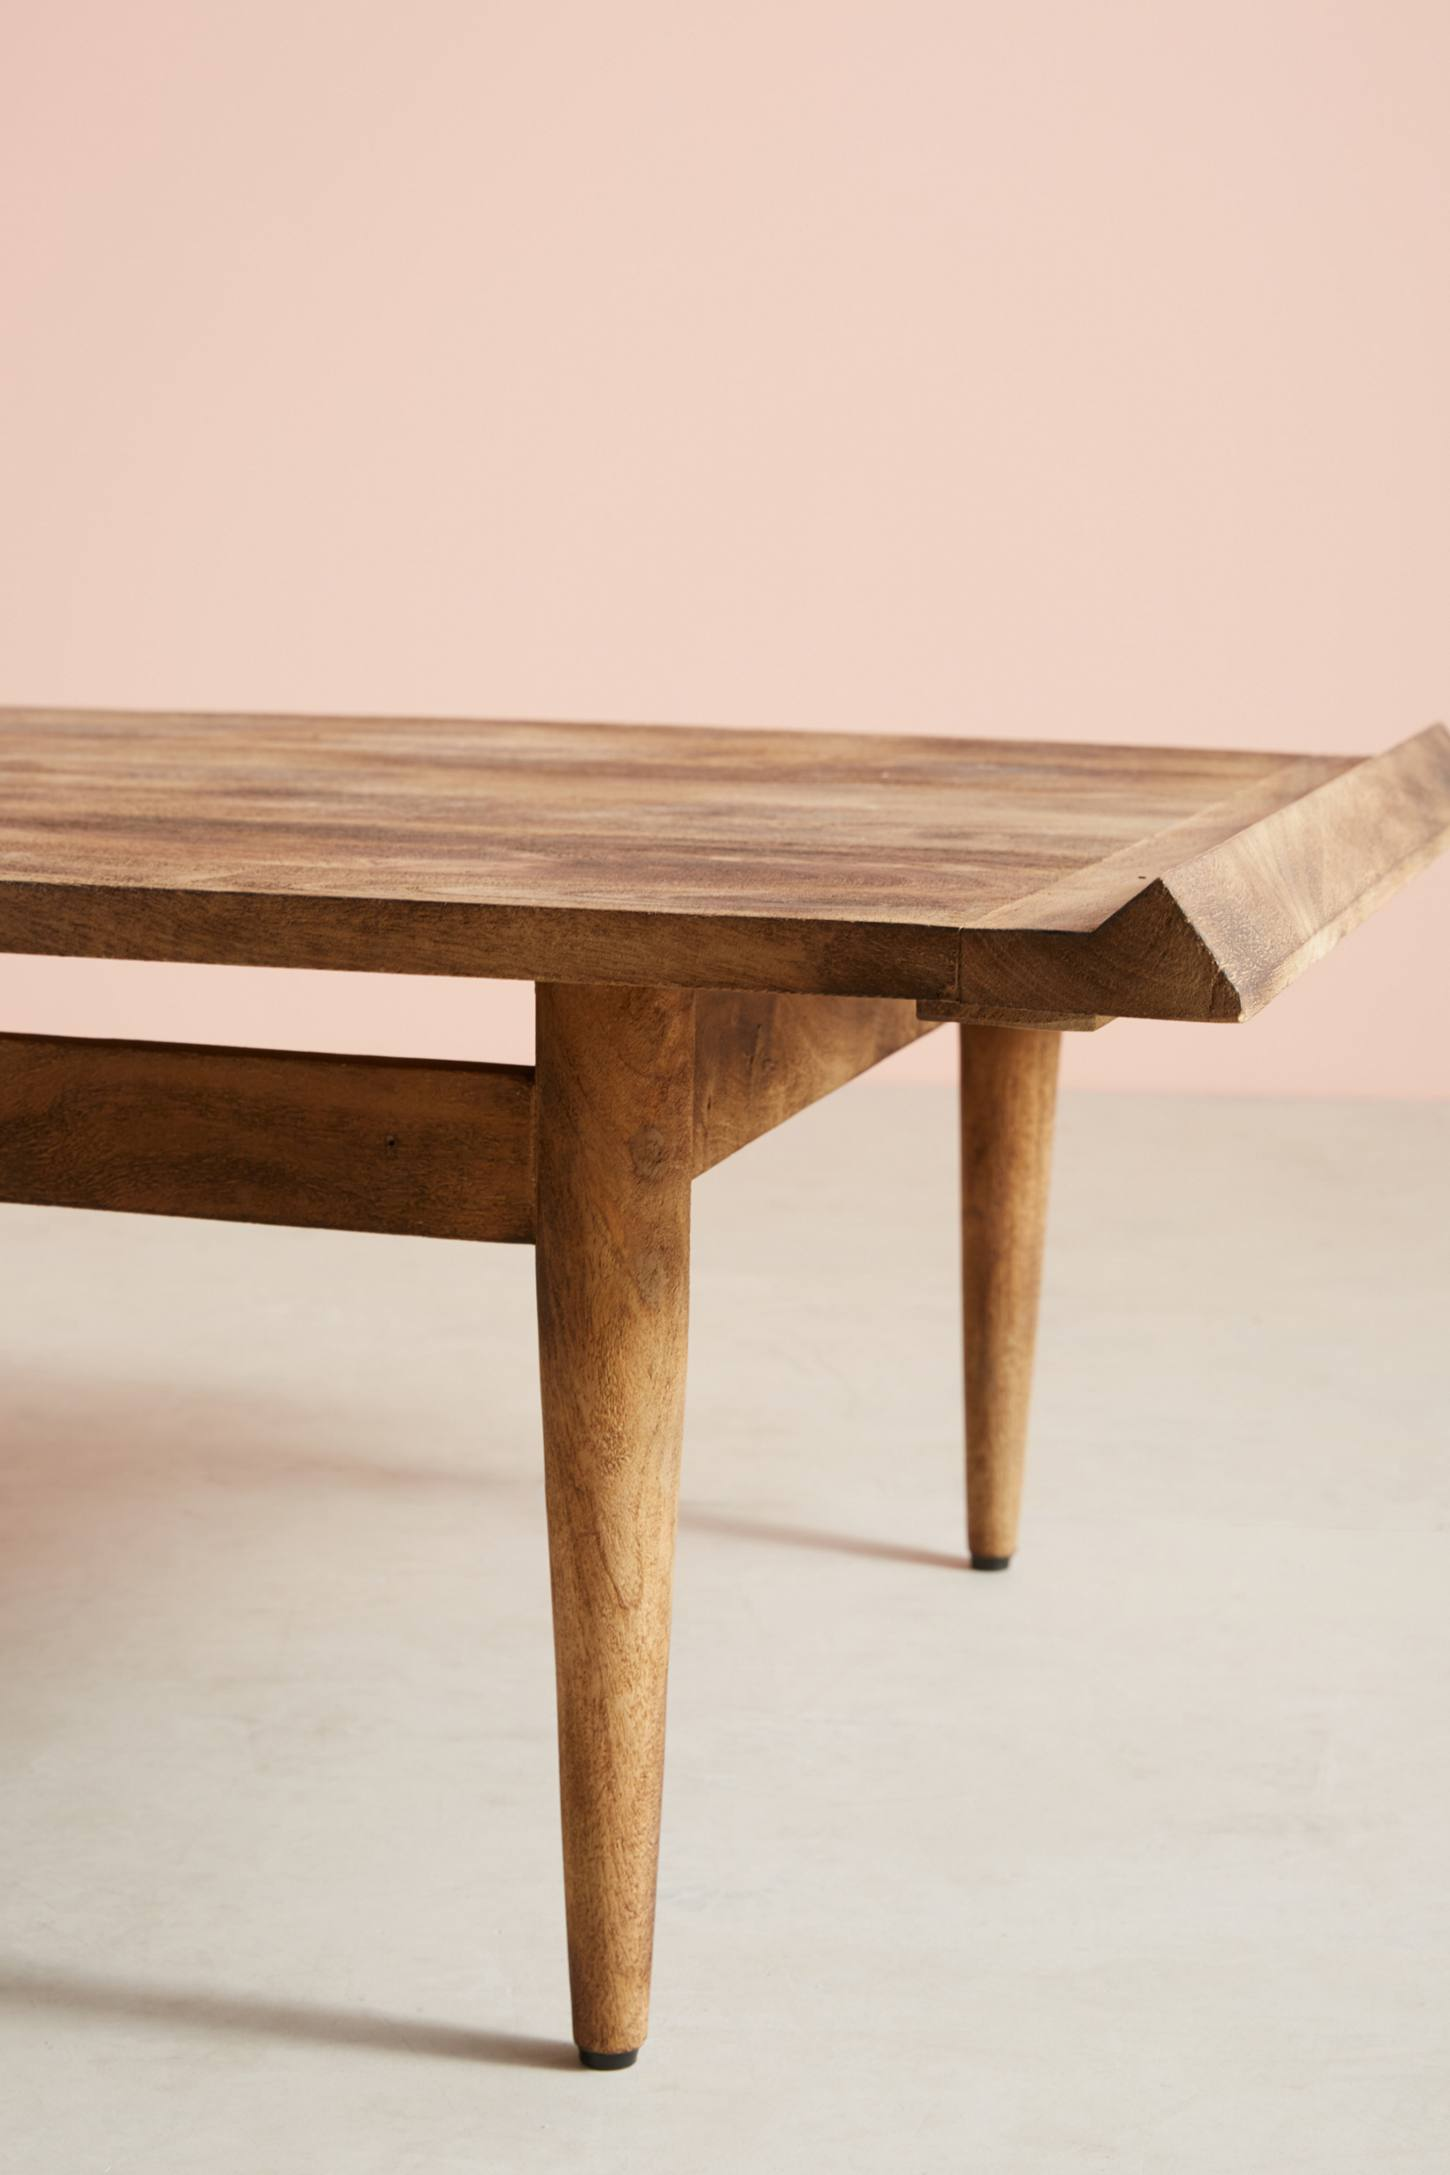 Slide View: 1: Burnished Wood Coffee Table